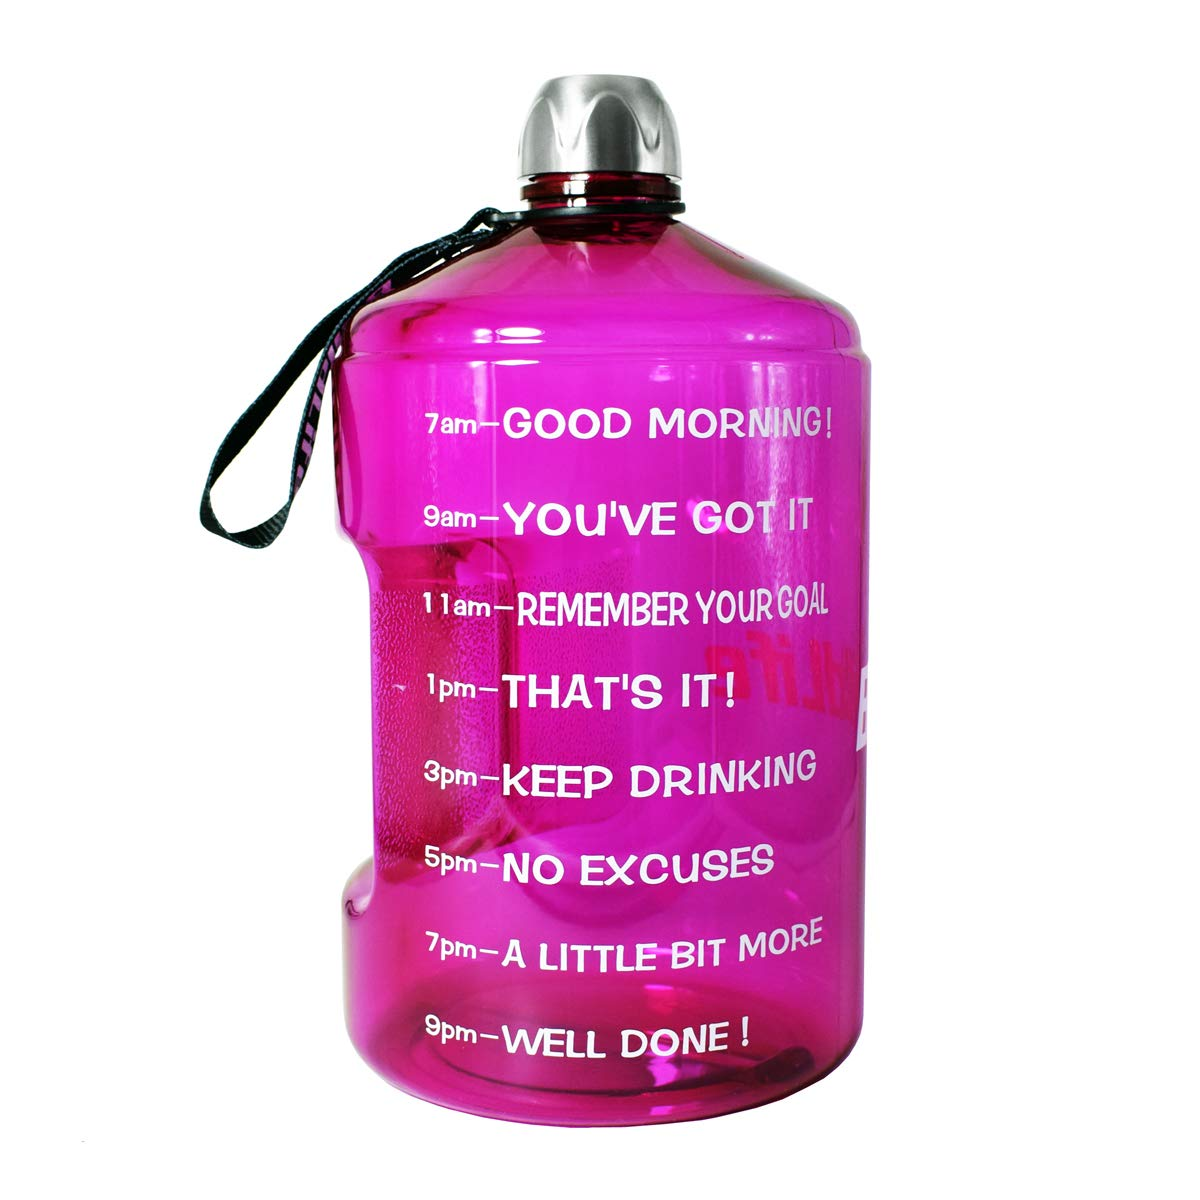 BuildLife 1 Gallon Water Bottle Motivational Fitness Workout with Time Marker |Drink More Water Daily | Clear BPA-Free | Large 128 Ounce/73OZ/43OZ of Water